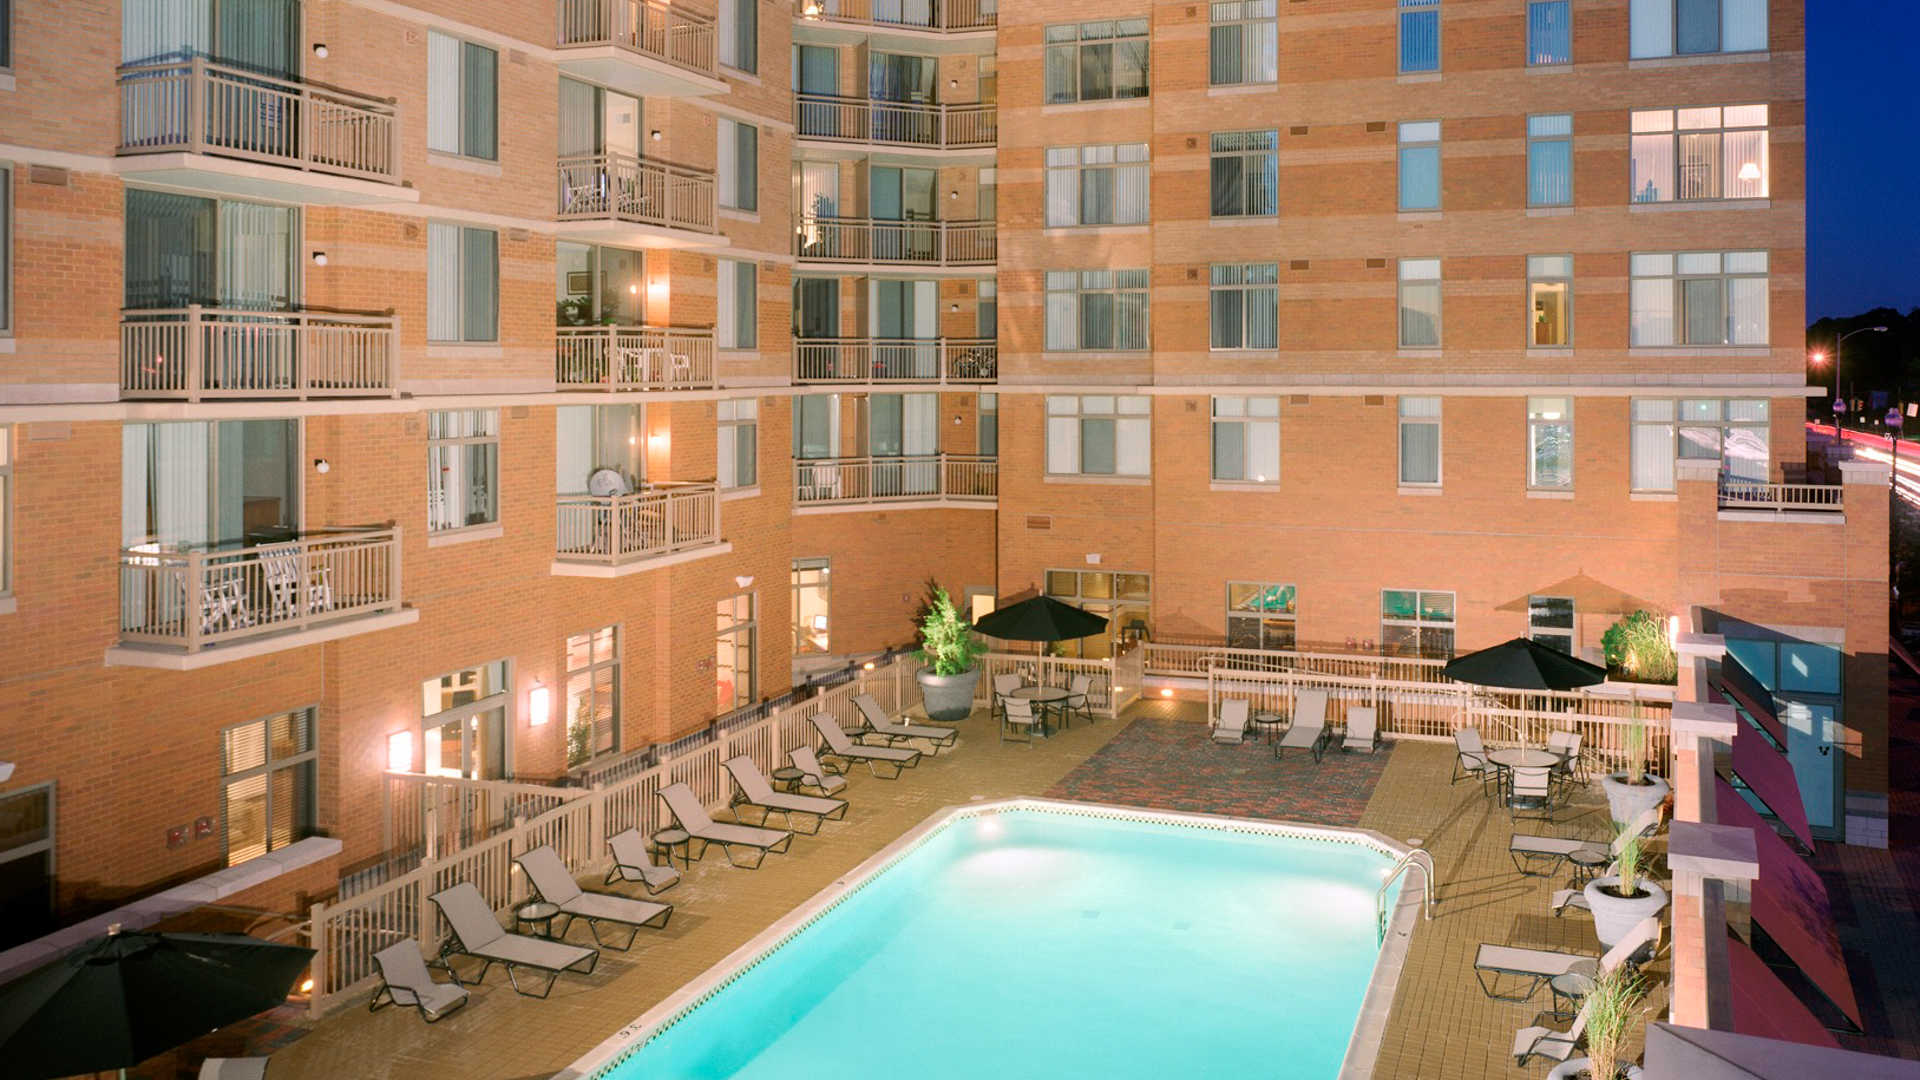 20 Best Apartments In Arlington, VA (with pictures)!